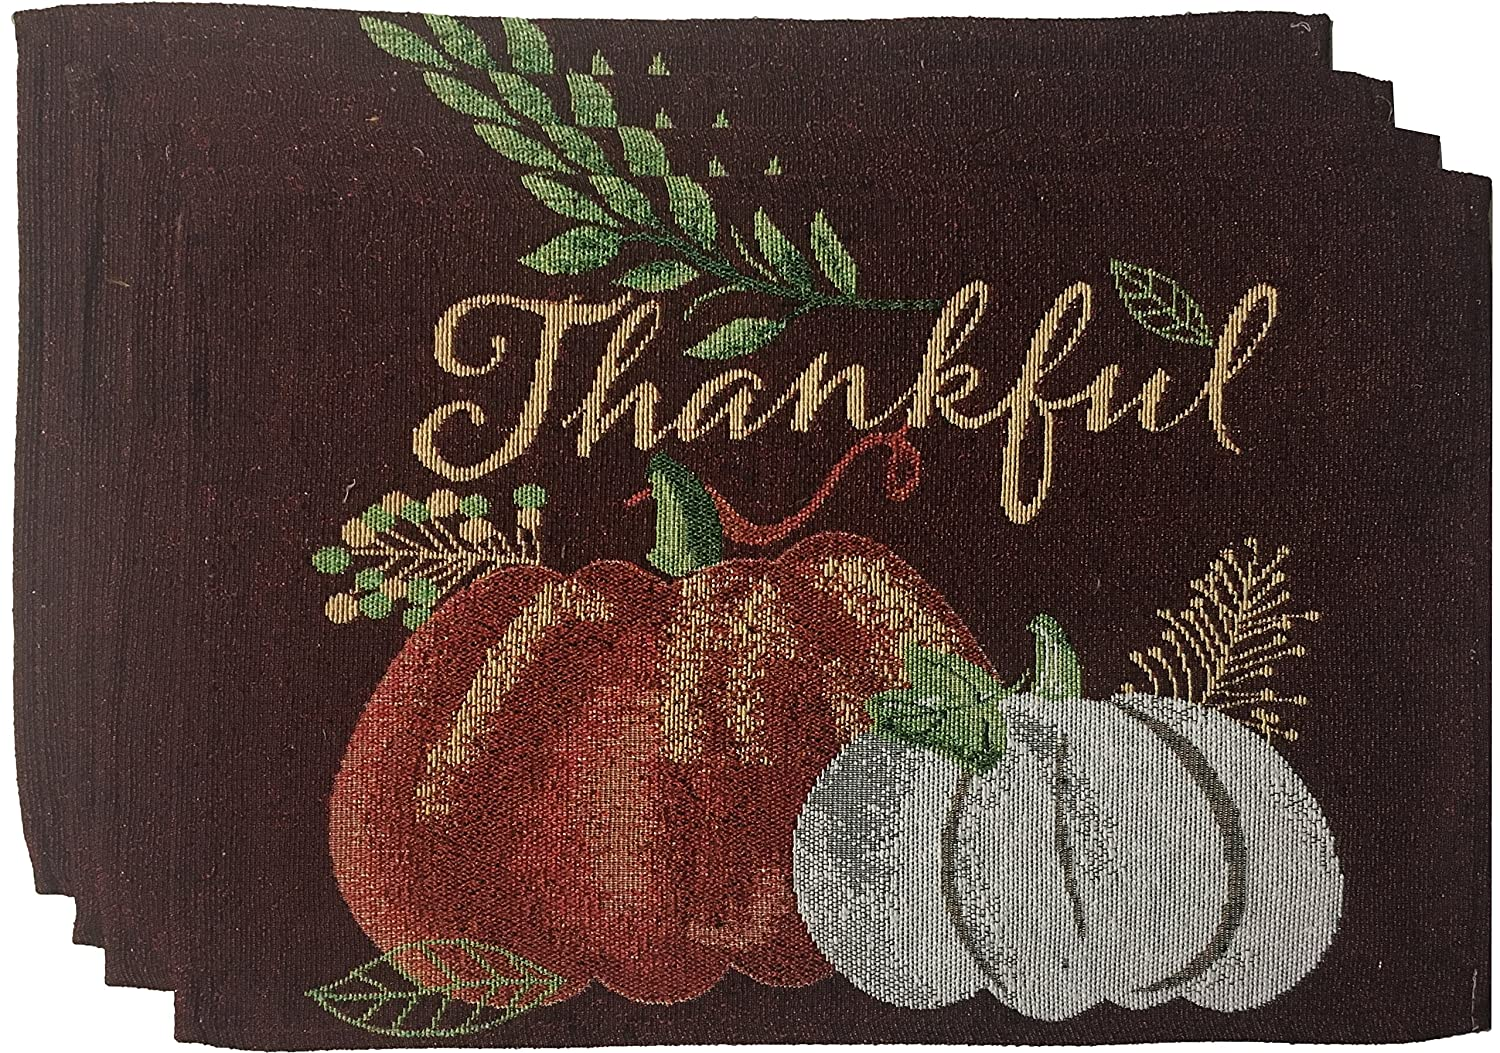 Nidico Set of 4, Printed Decorative Fall/Halloween/Thanksgiving Collection Tapestry Placemats Size : 13 x 19. (Design A) Cotton Konnection 181-P